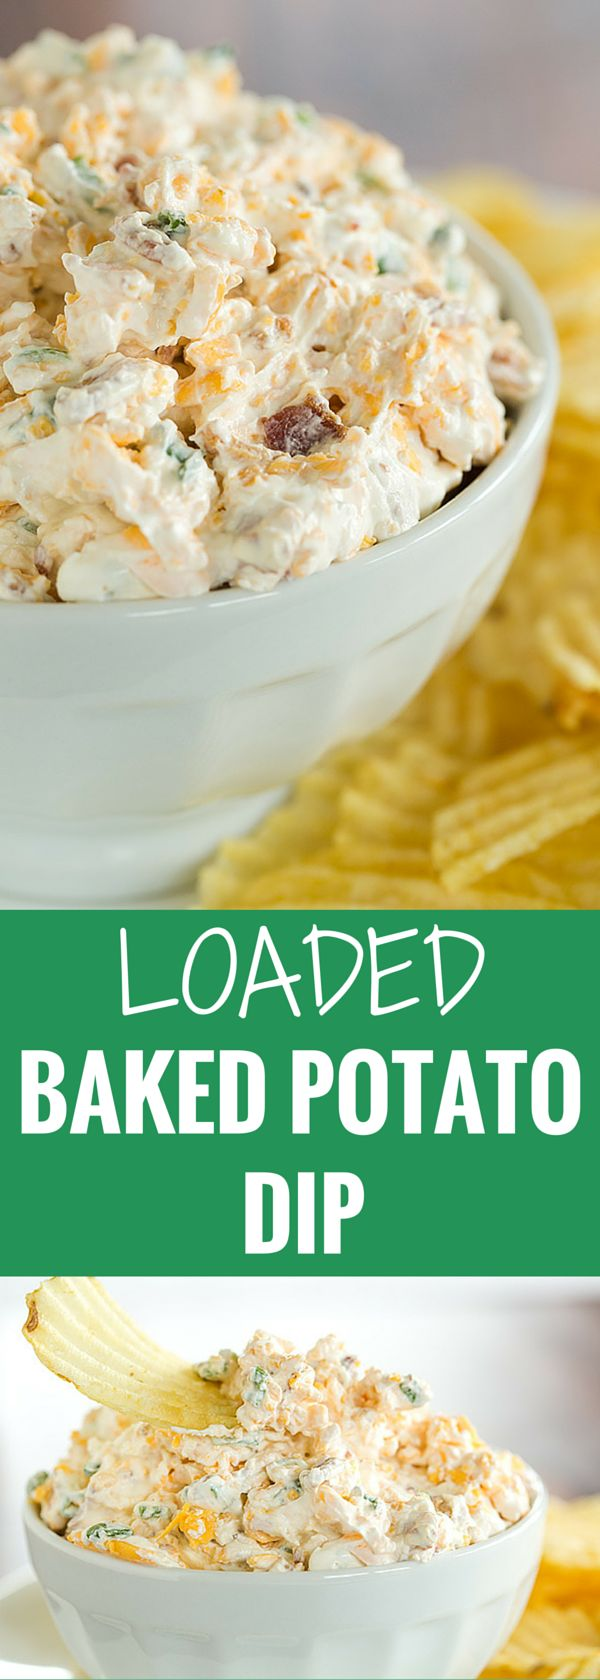 This loaded baked potato dip combines all of the fantastic flavors of a classic loaded baked potato - sour cream, bacon, cheese and scallions. Scoop away with potato chips!